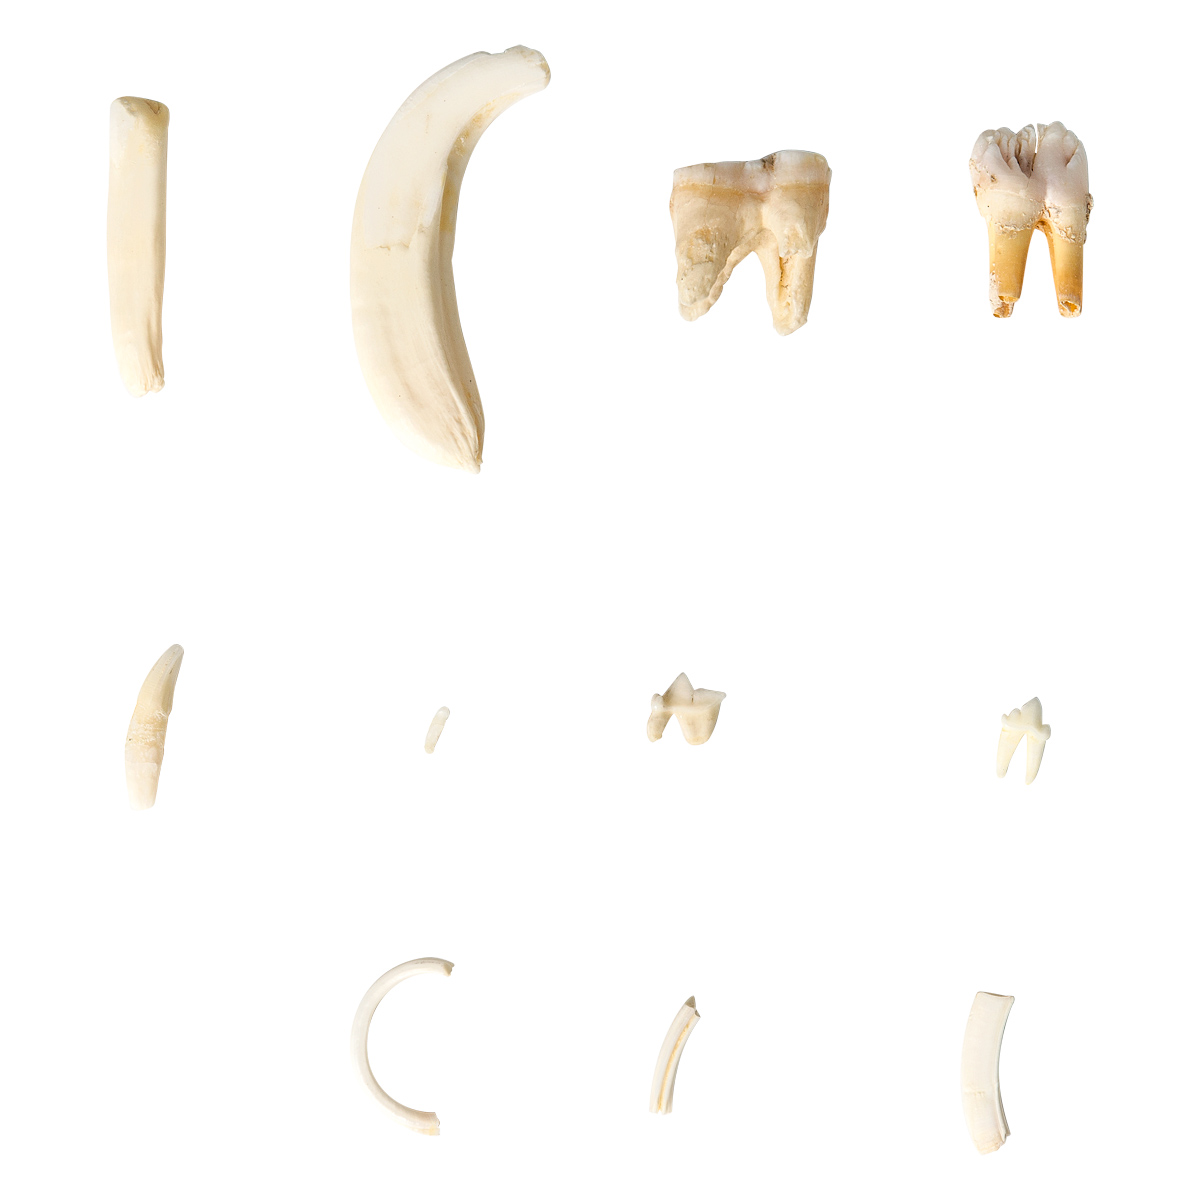 Tooth Types of Different Mammals (Mammalia), Deluxe Version ...